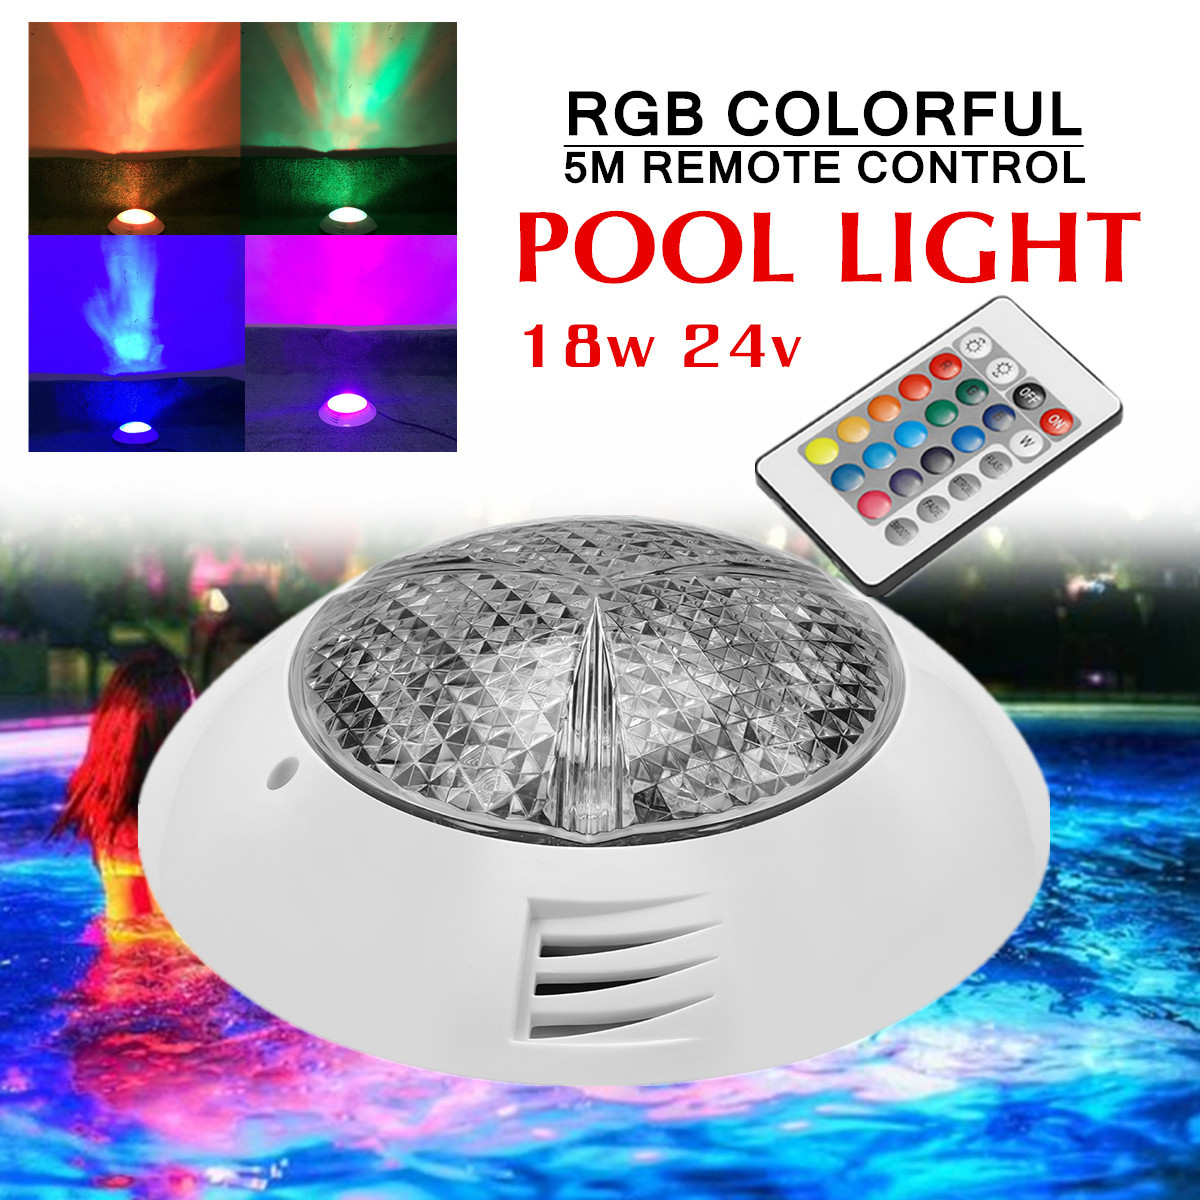 Colorful Swimming Pool Spa Light 18W 24V LED RGB Underwater Lamp Remote Control Mounted Design Brightness 50000 Working Hours